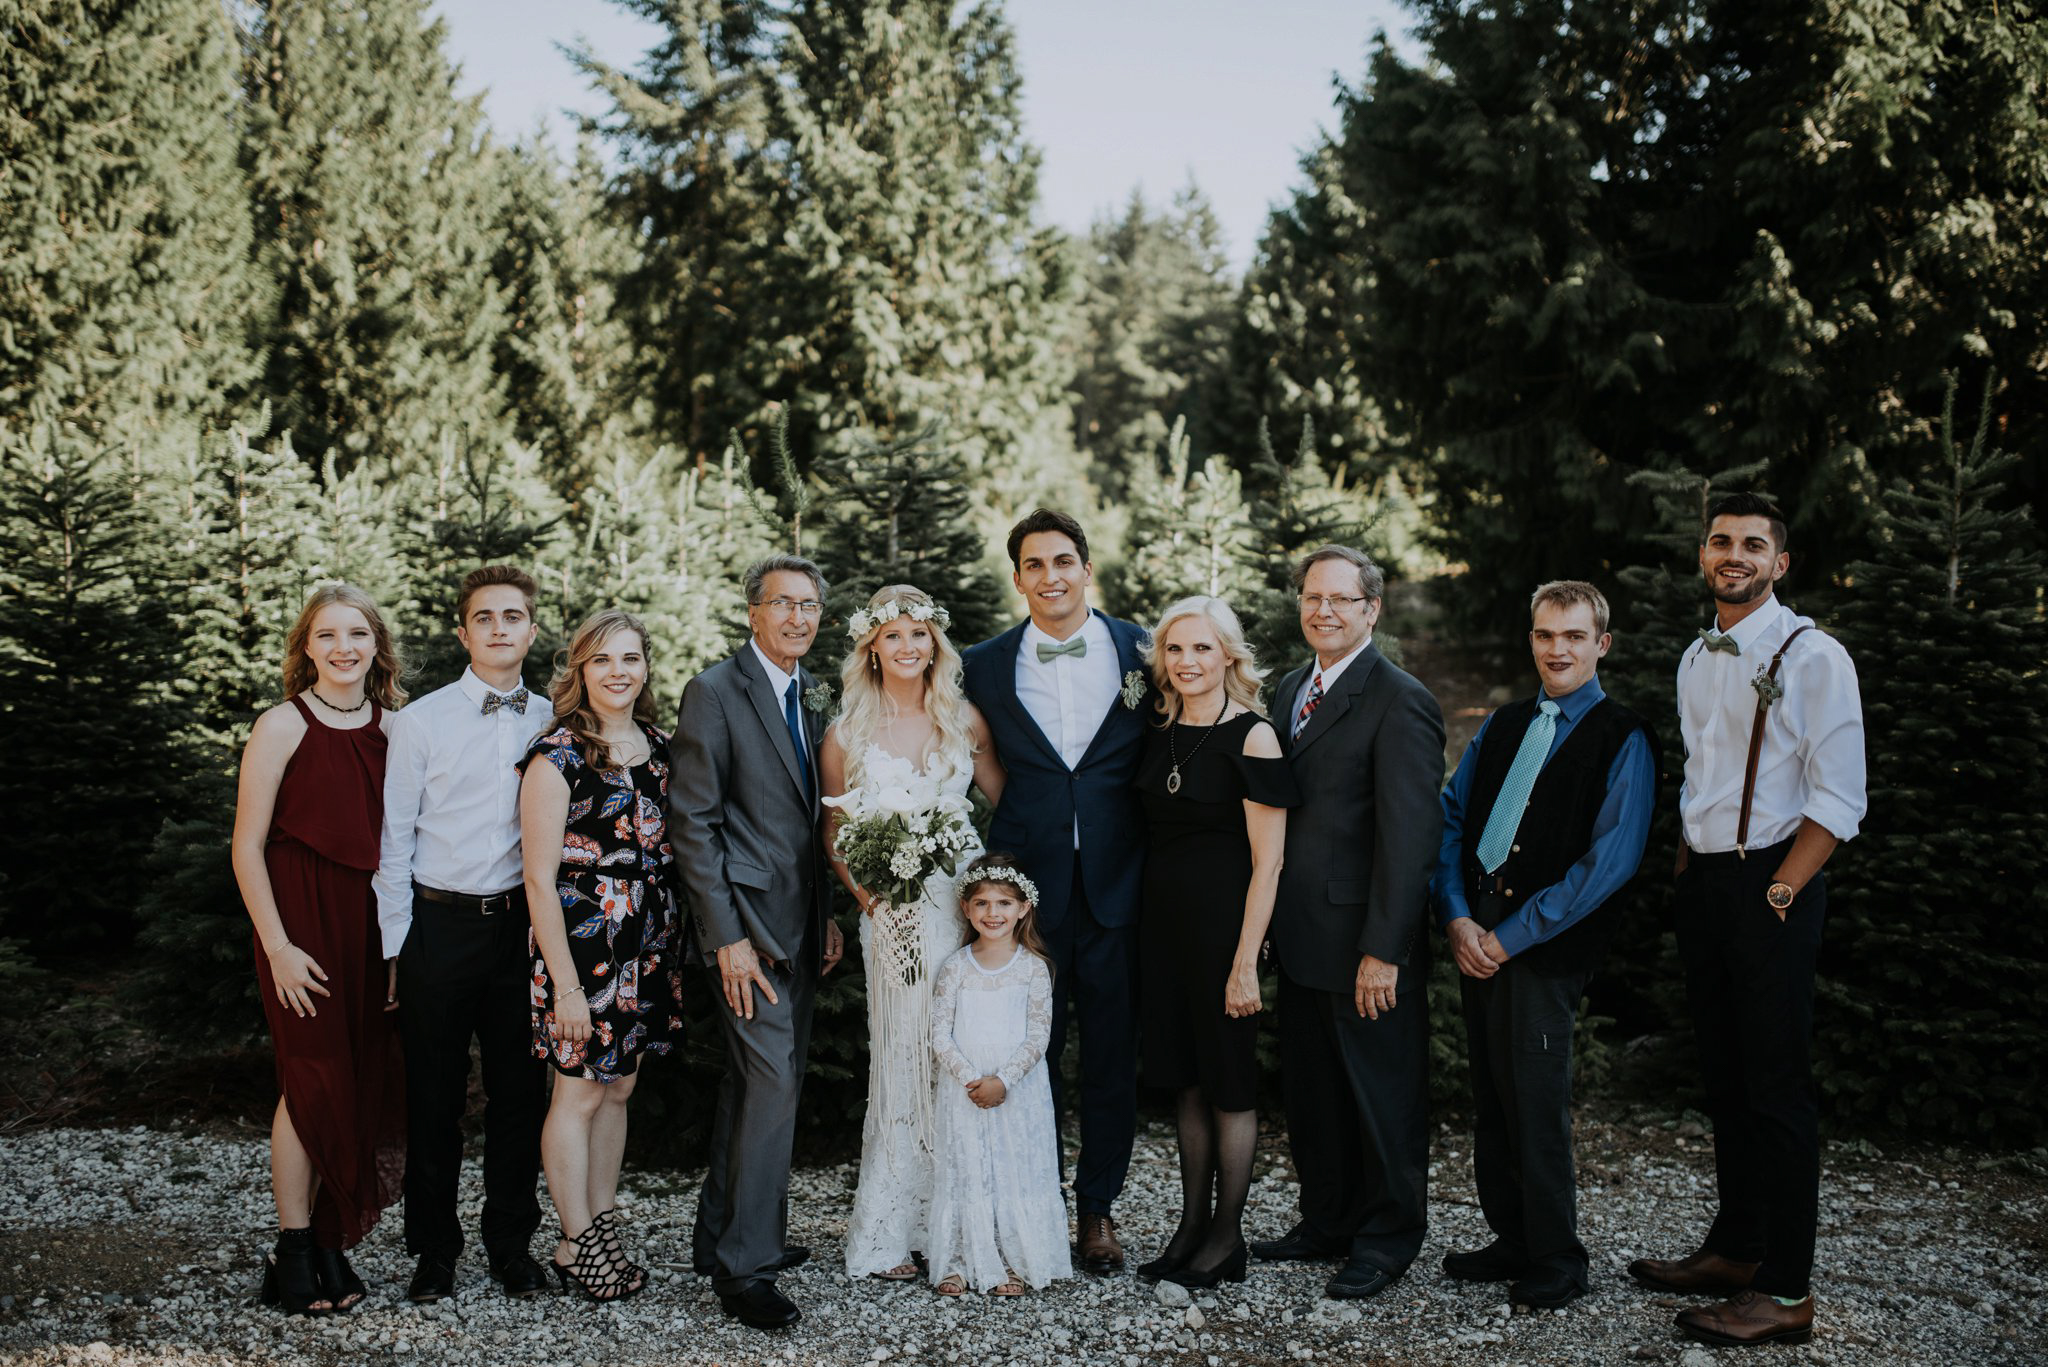 trinity-tree-farm-issaquah-washington-wedding-seattle-lifestyle-photographer-caitlyn-nikula-photography-81.jpg